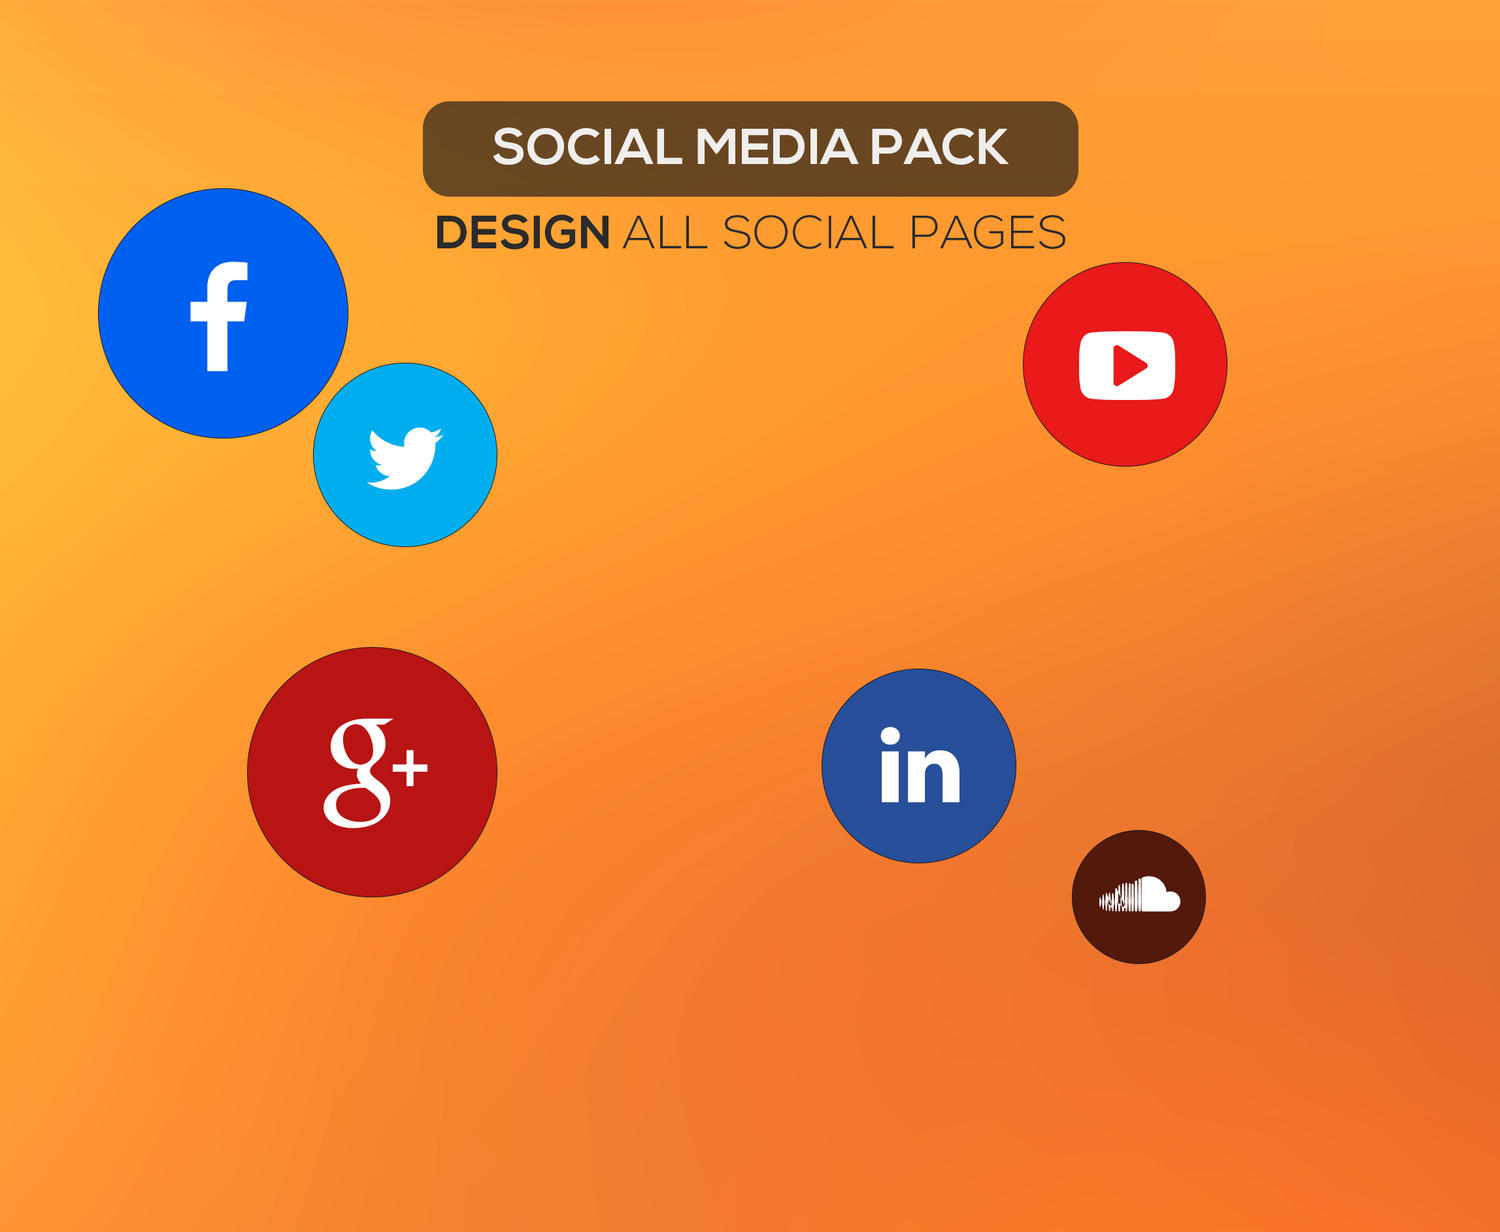 Design Social Media Package by ronitashkodra - 95261